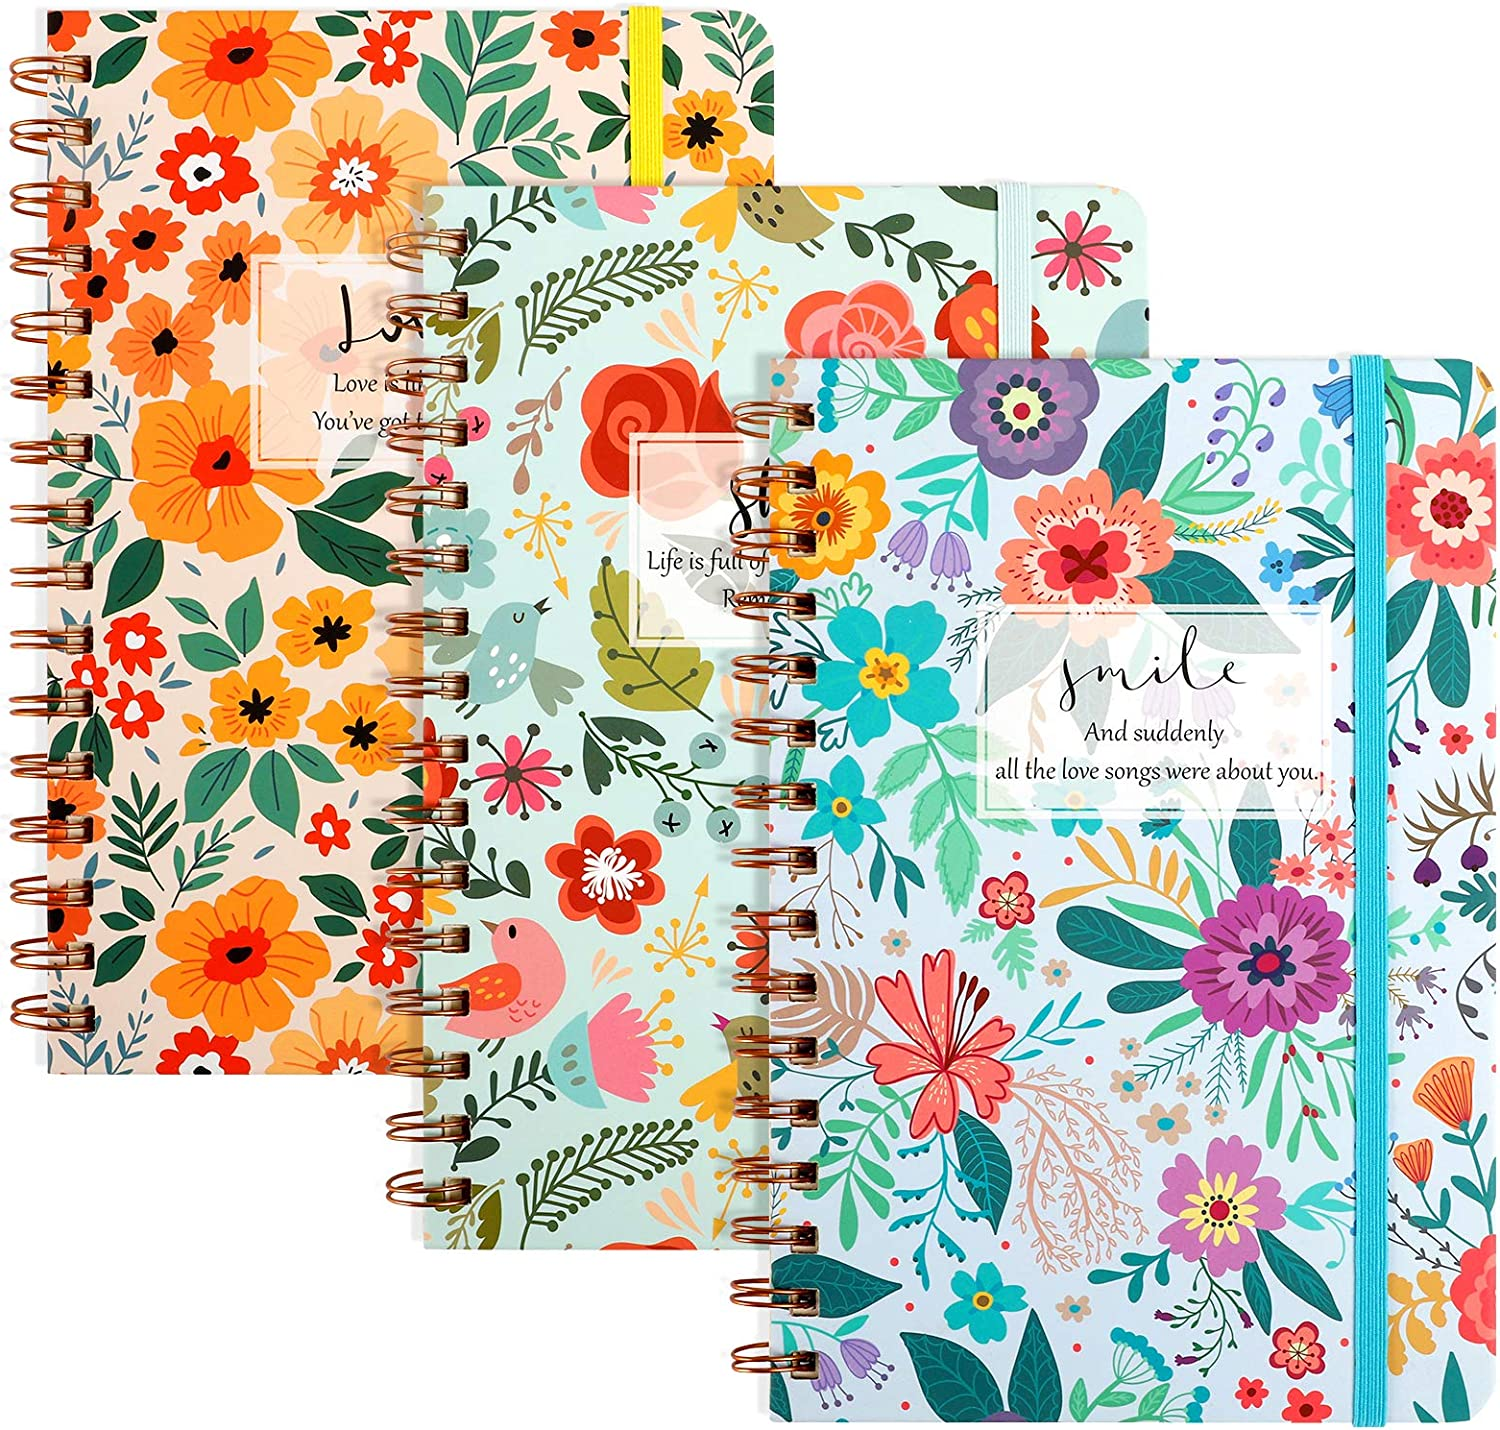 LABUK 3 Pack Super sale Ruled Spiral Notebook Sheets Bombing free shipping 5.5x8.3 Inch 80 Flower